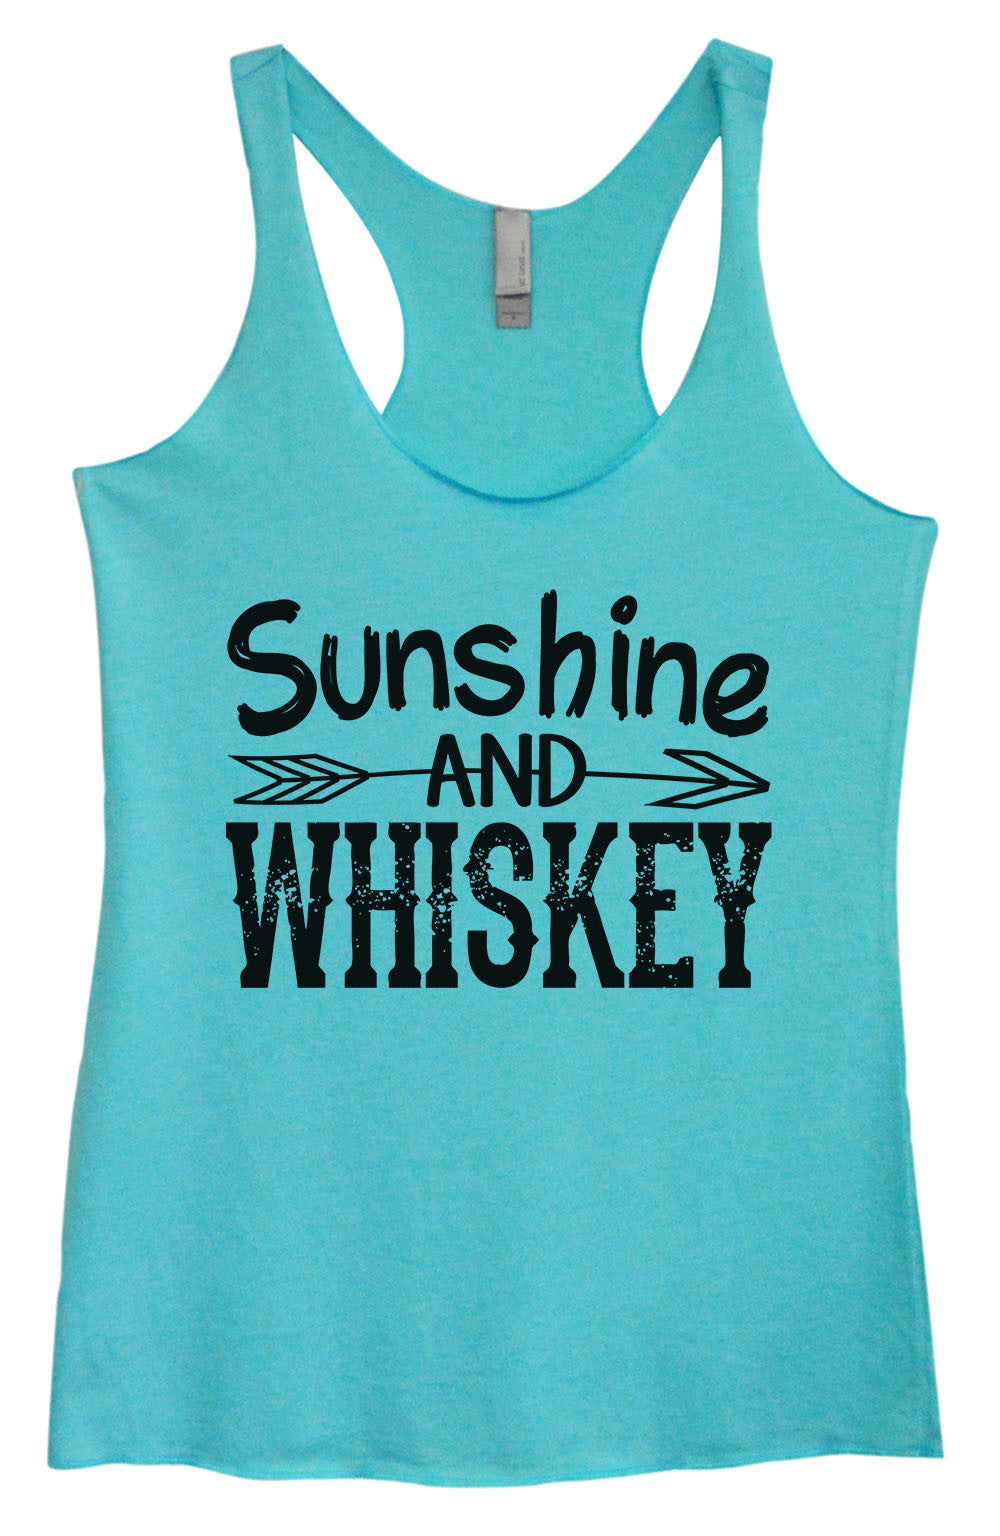 Womens Fashion Triblend Tank Top - Sunshine And Whiskey - Tri-1406 - Funny Shirts Tank Tops Burnouts and Triblends  - 3